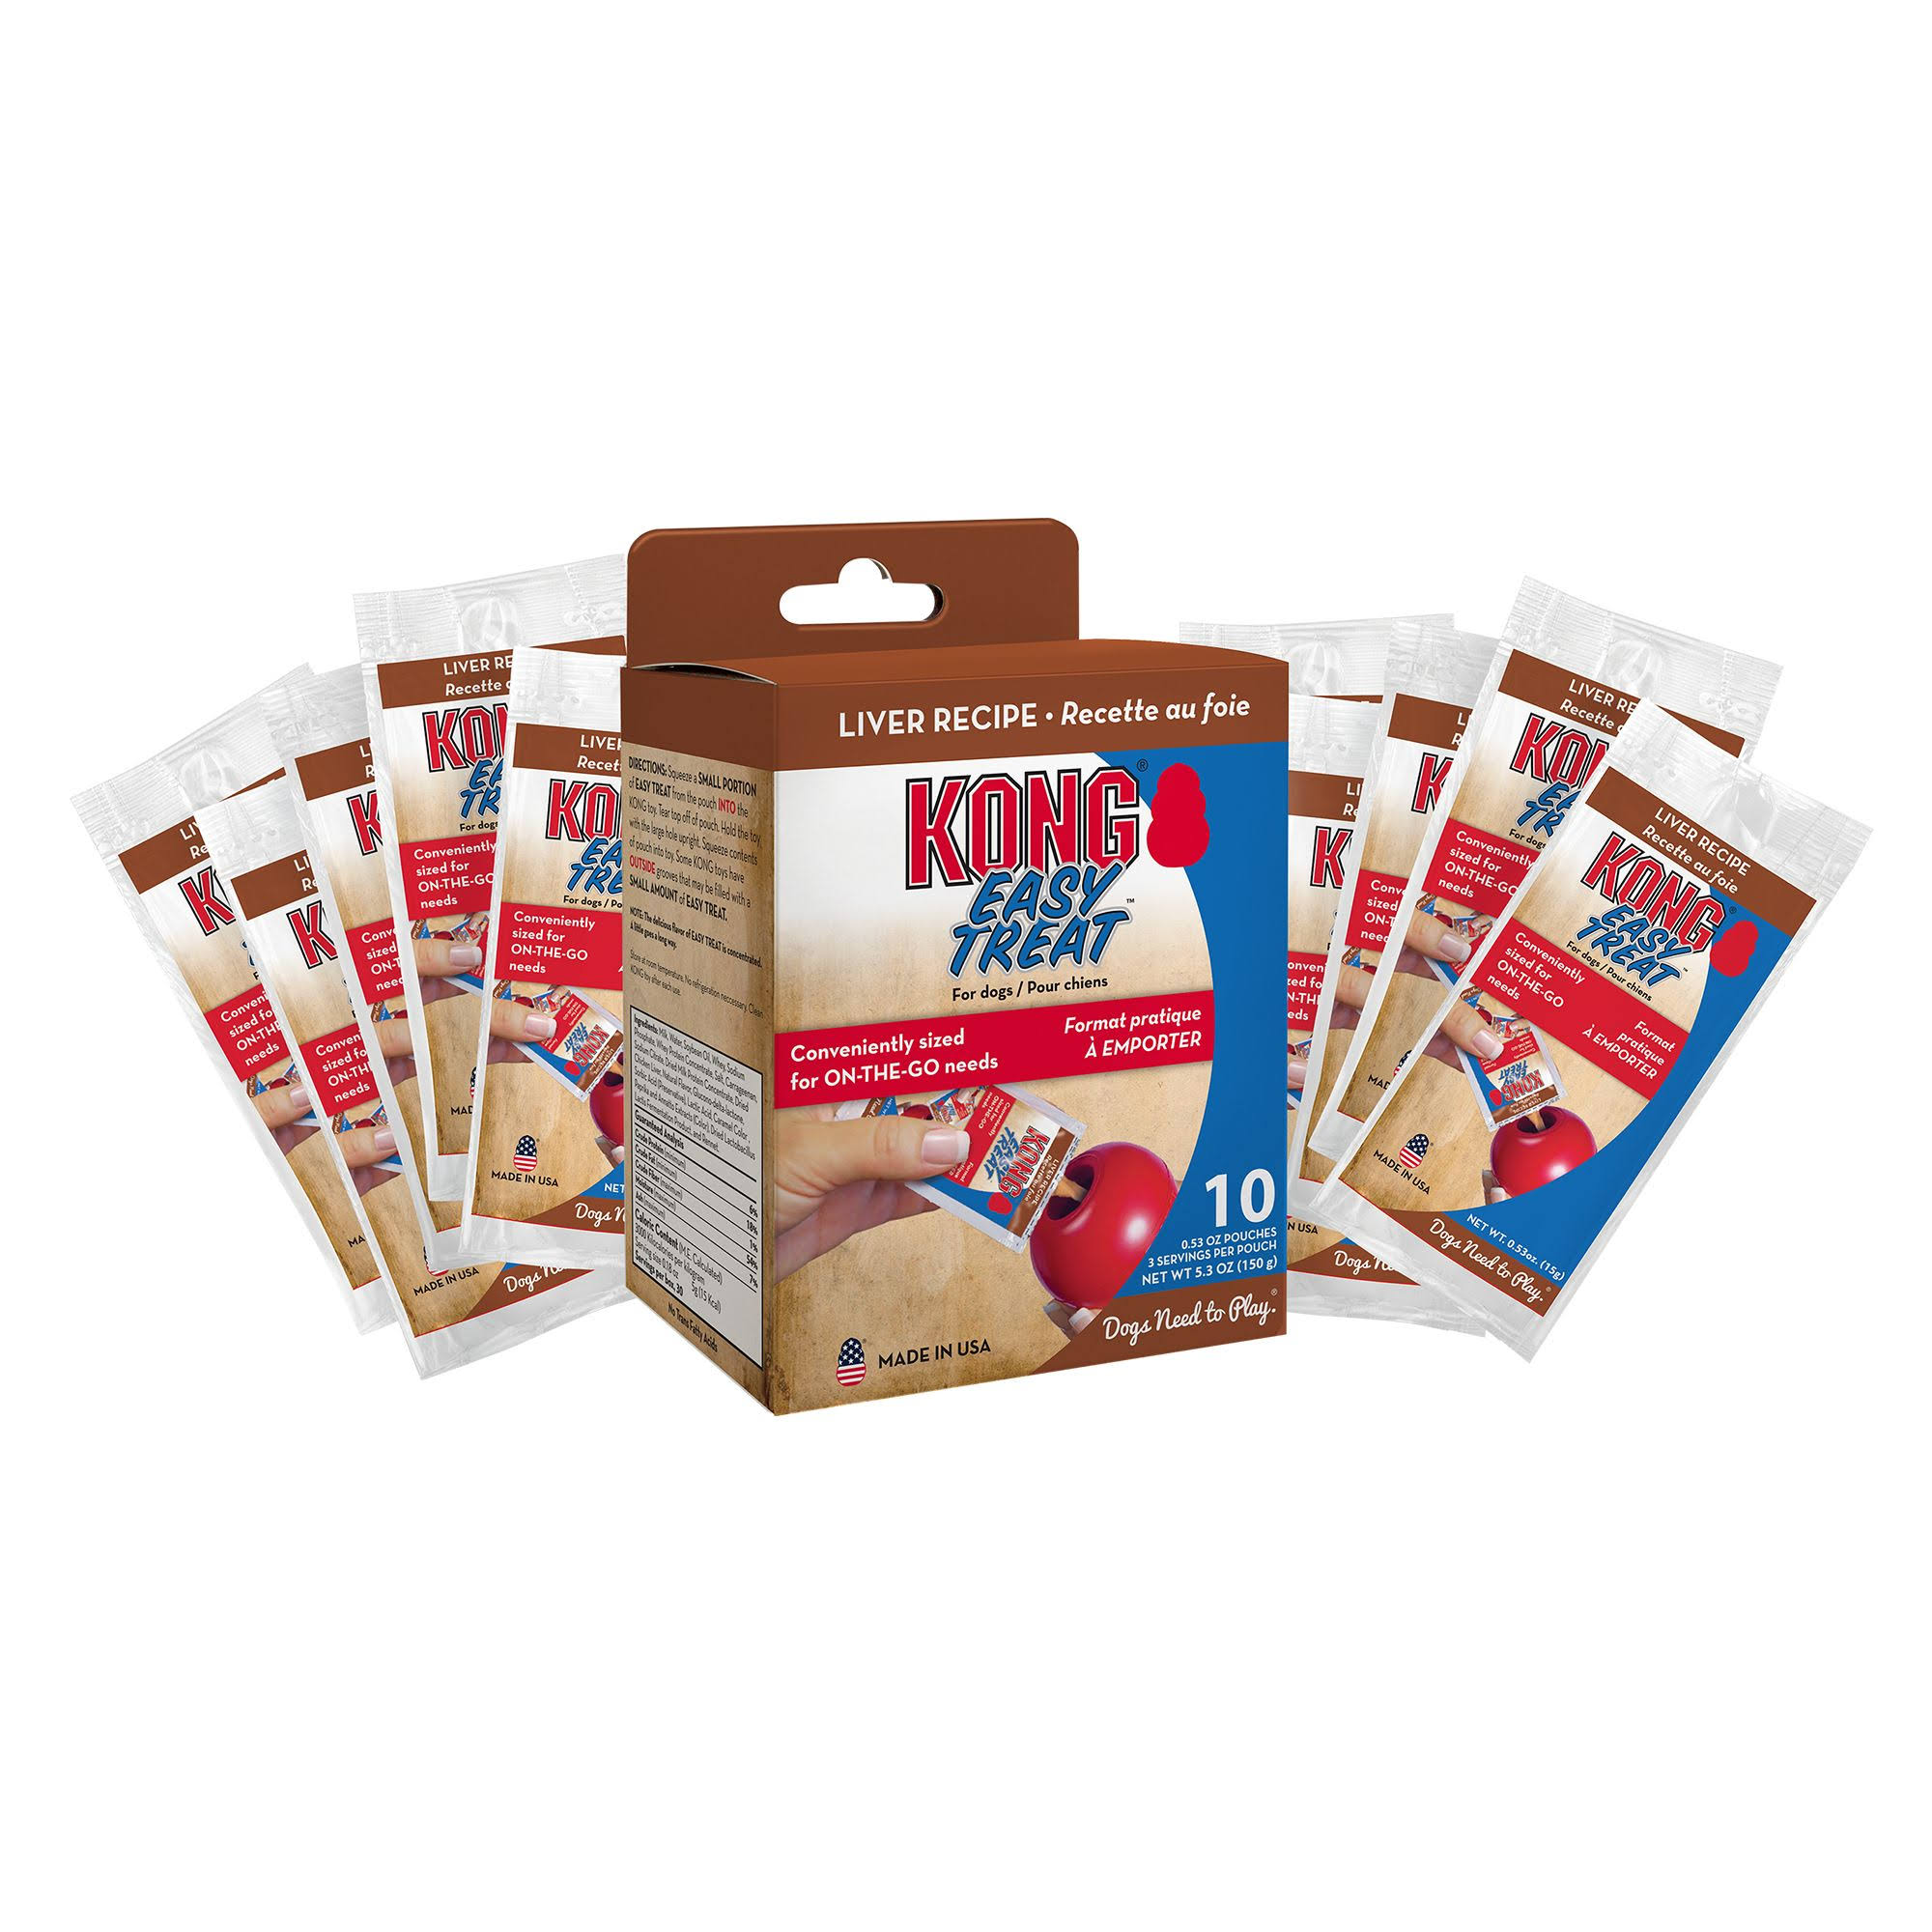 Kong Company Easy Treat to Go Liver Dog Treat - 5.3oz, 10pk